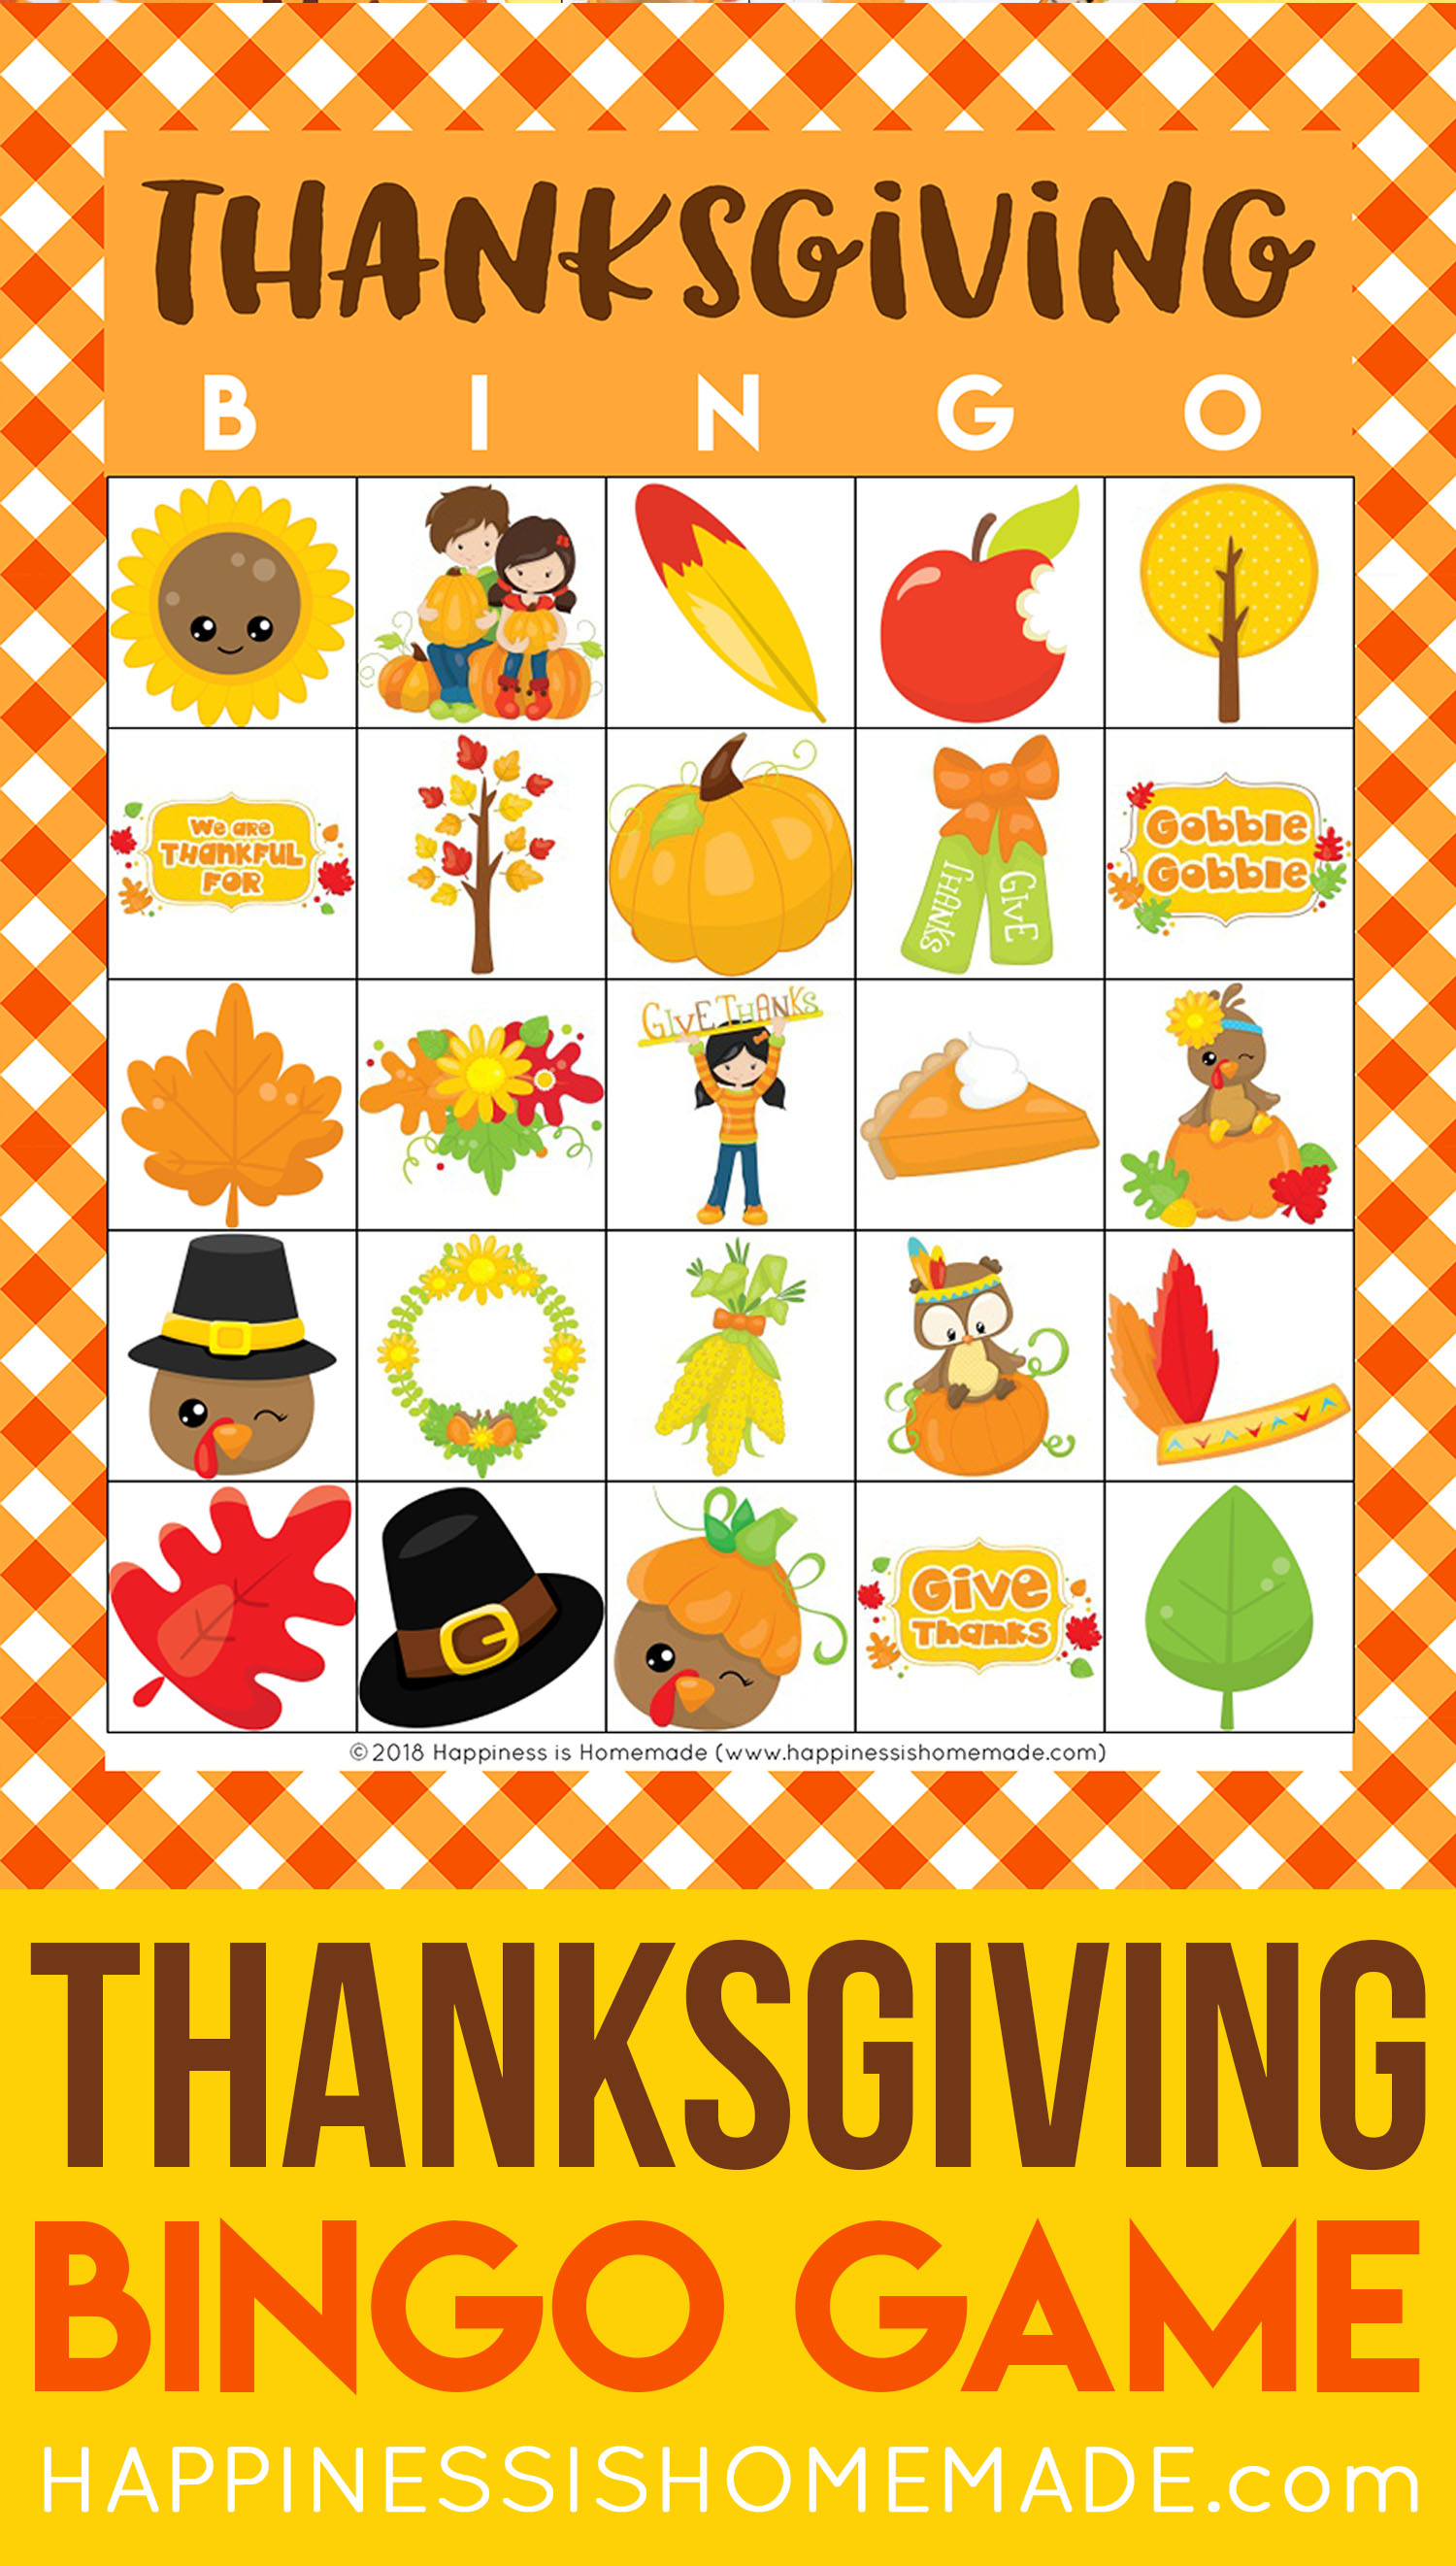 image about Free Printable Thanksgiving Bingo Cards known as Cost-free Printable Thanksgiving Bingo Playing cards - Joy is Home made